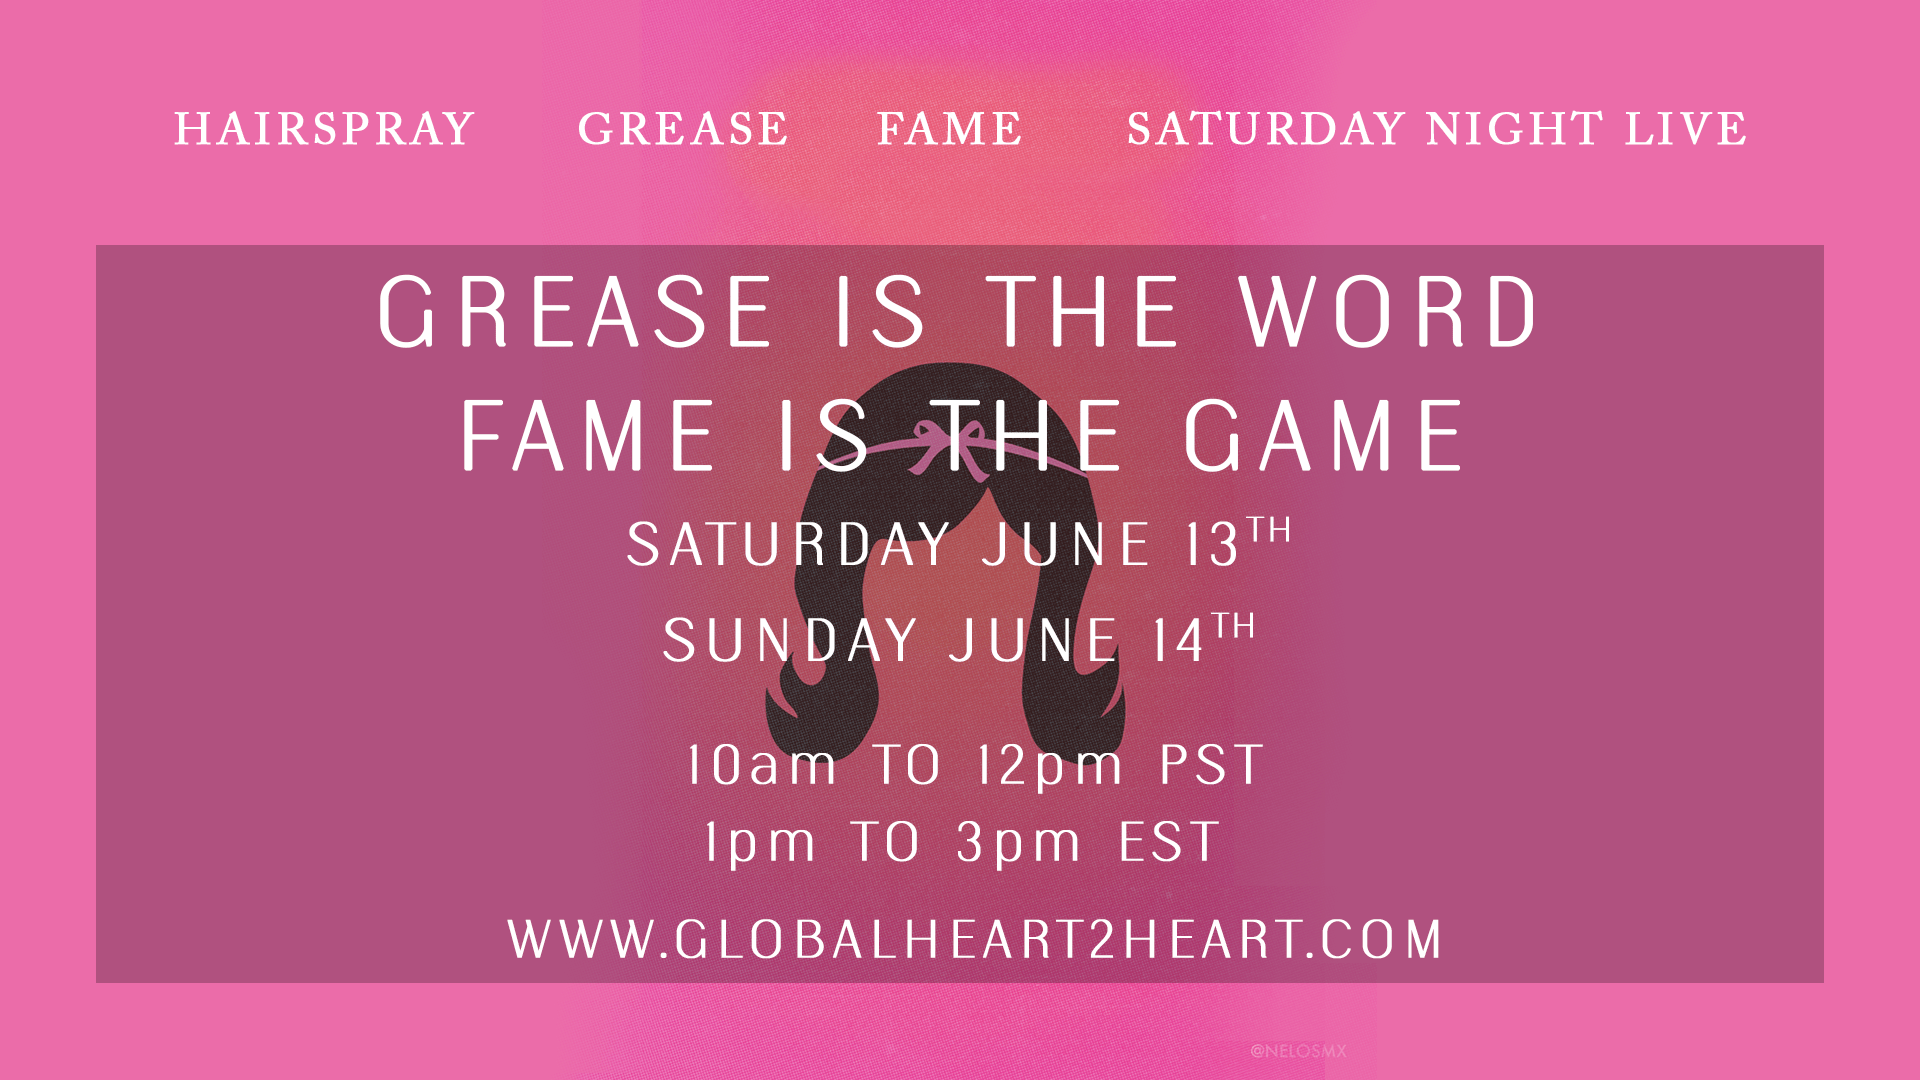 Grease is the Word Fame is the Game